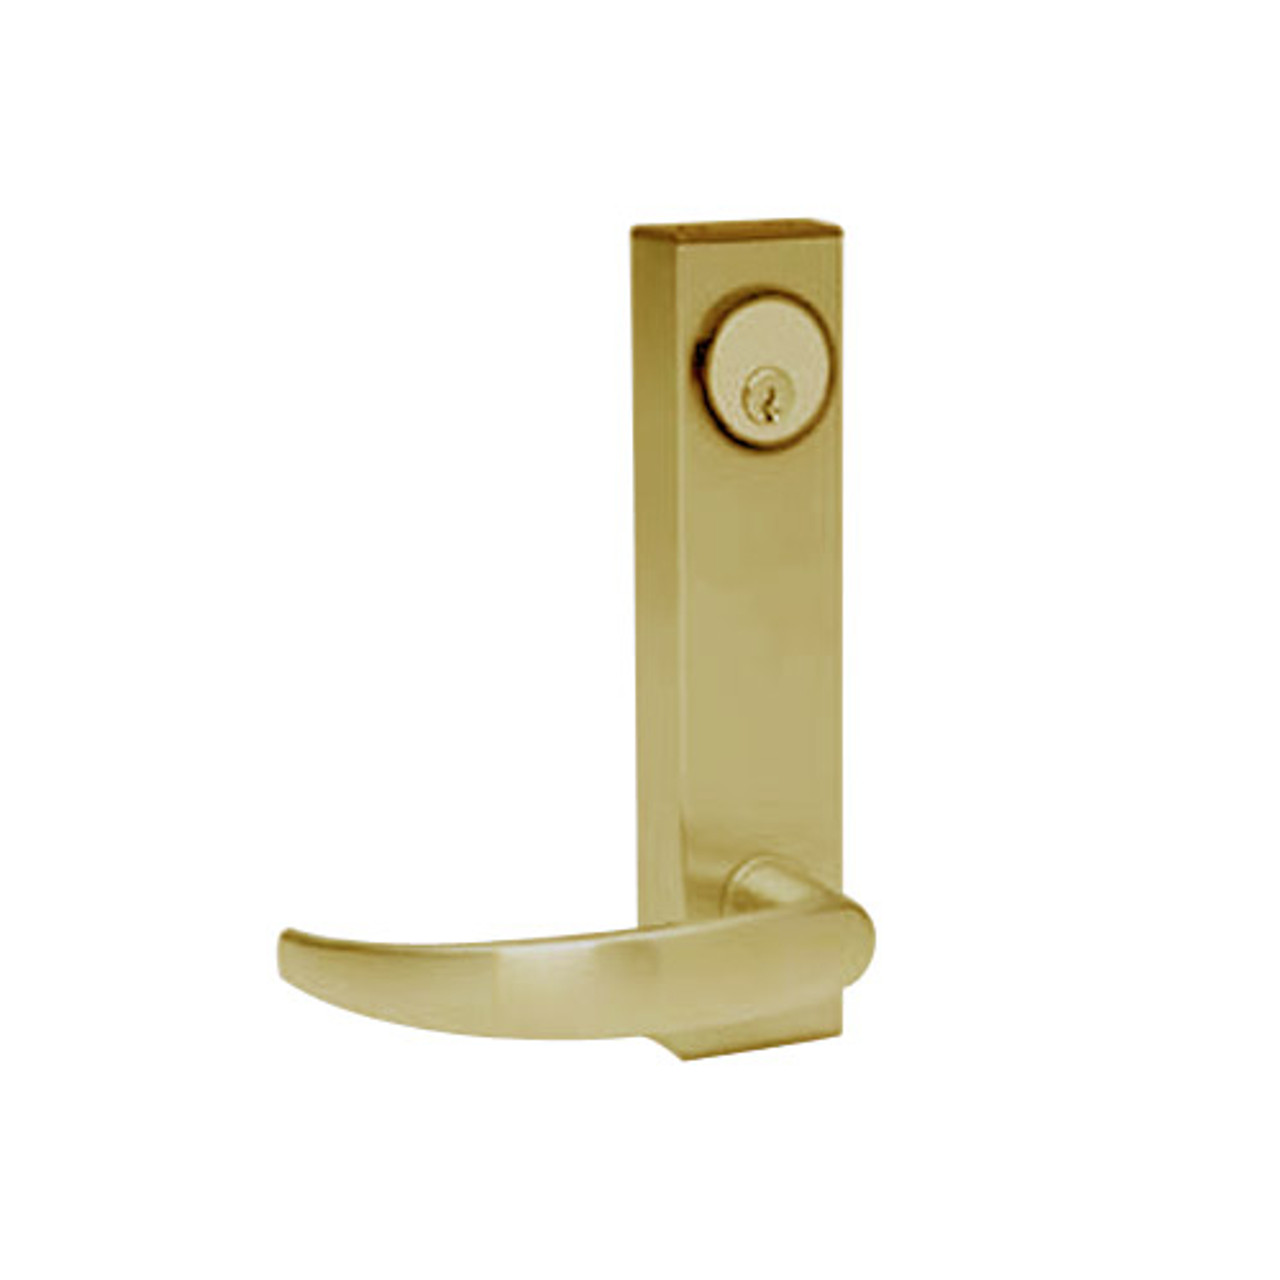 3080E-01-0-37-50 US4 Adams Rite Electrified Entry Trim with Curve Lever in Satin Brass Finish